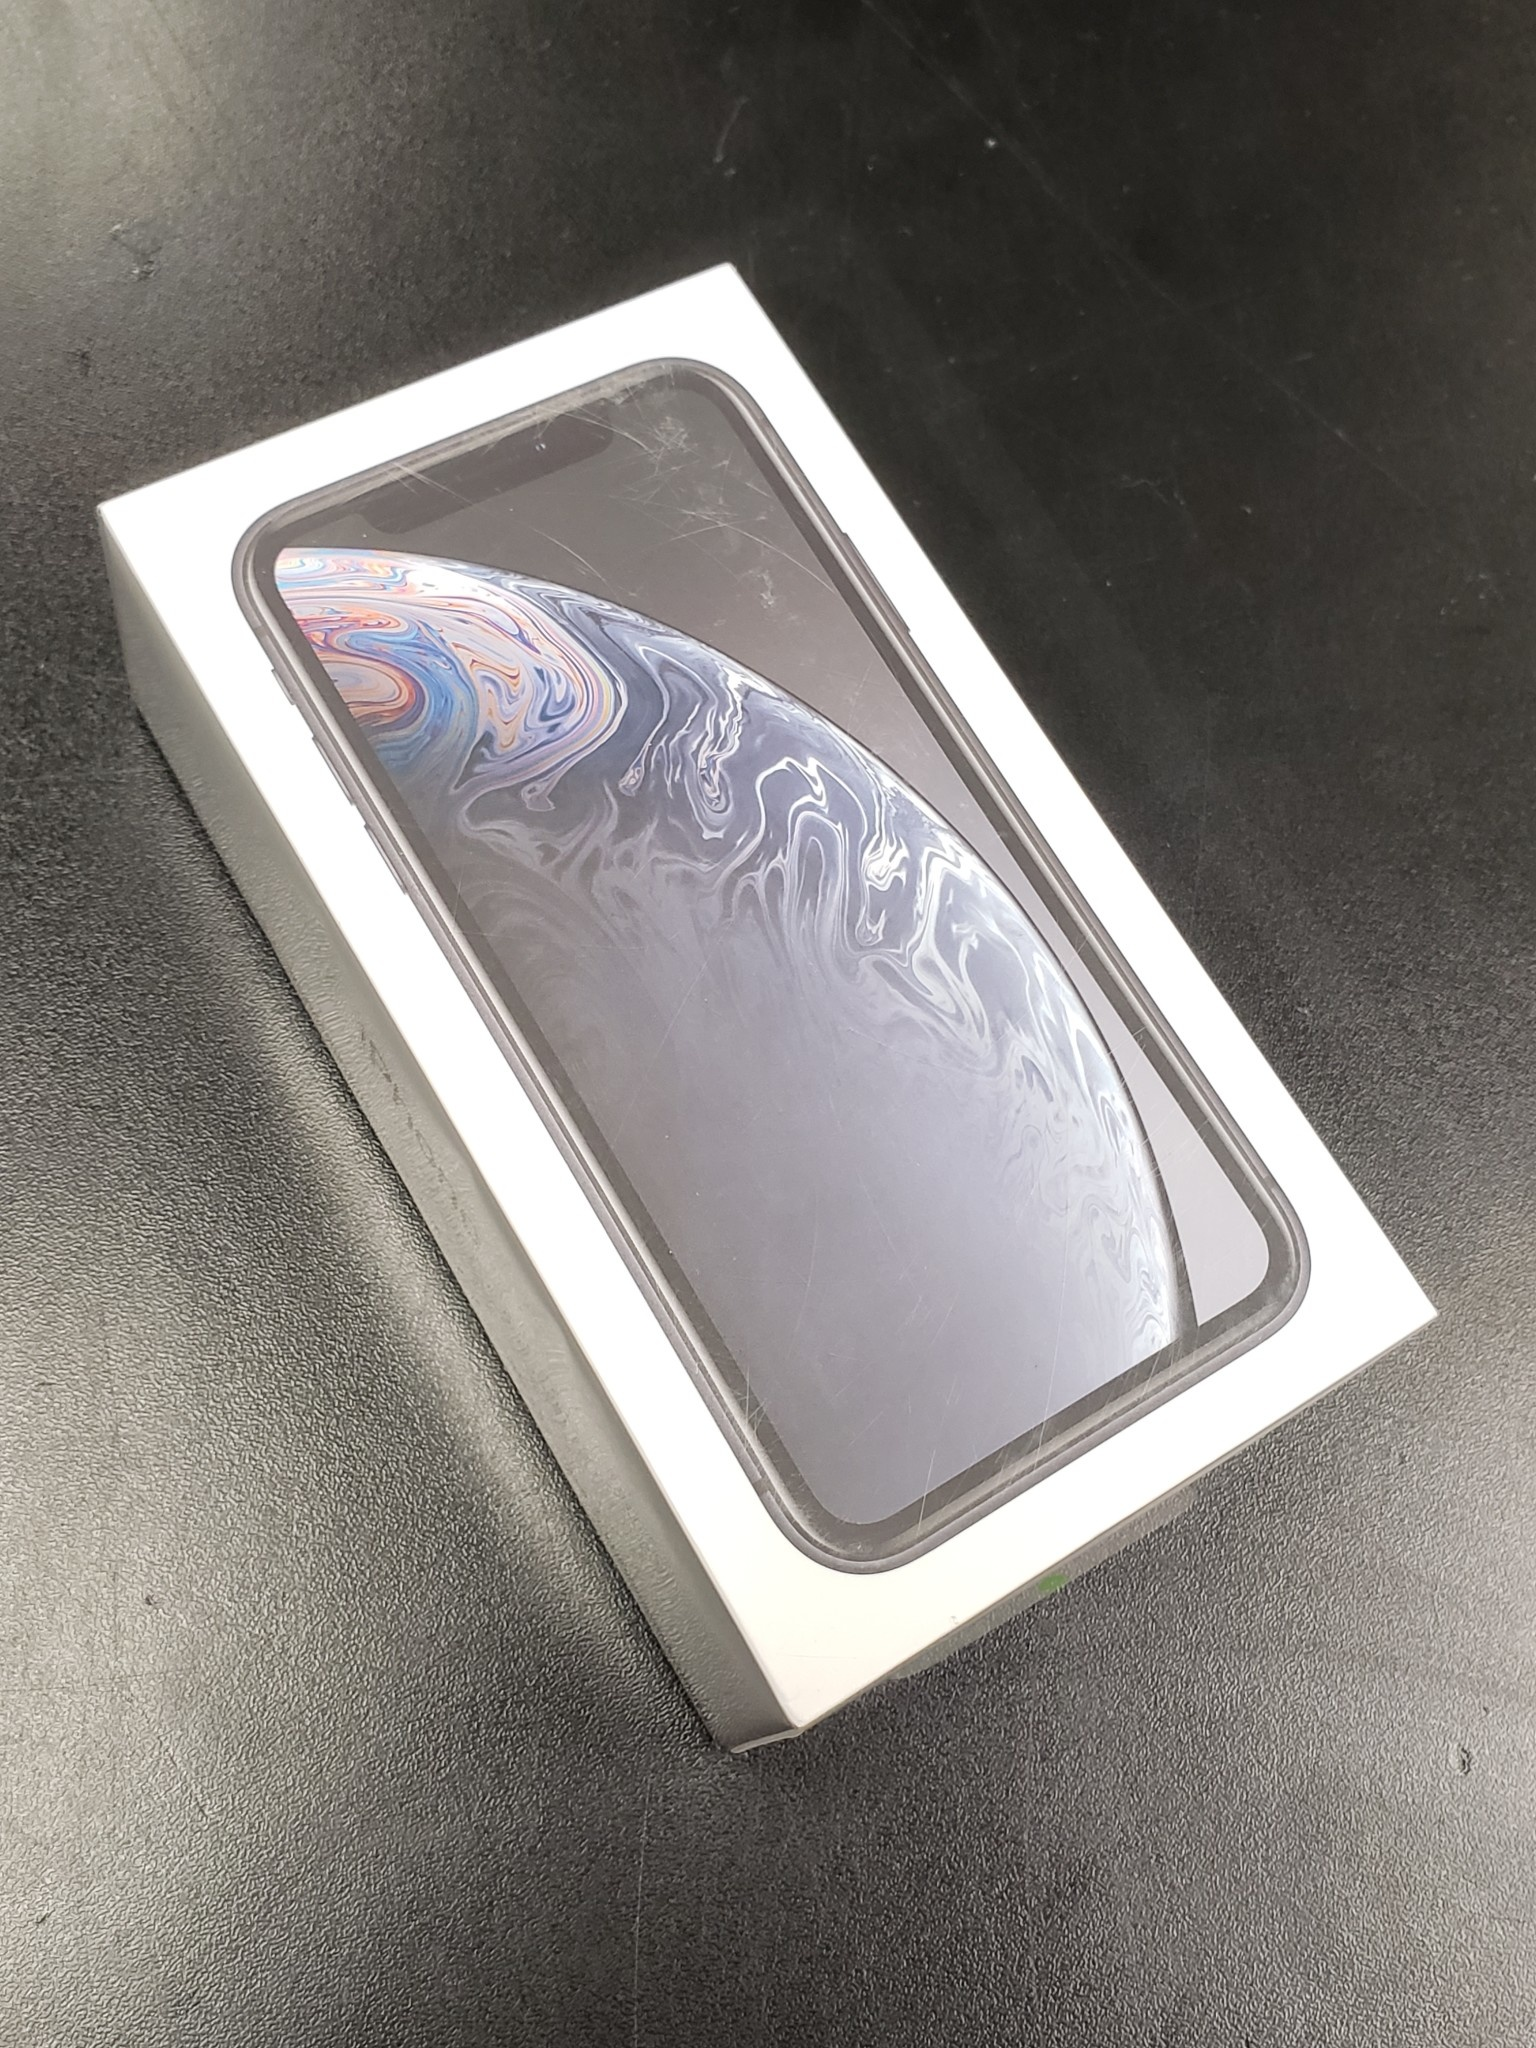 Factory Sealed - T-Mobile/MetroPCS - iPhone XR - 64GB - Space Grey